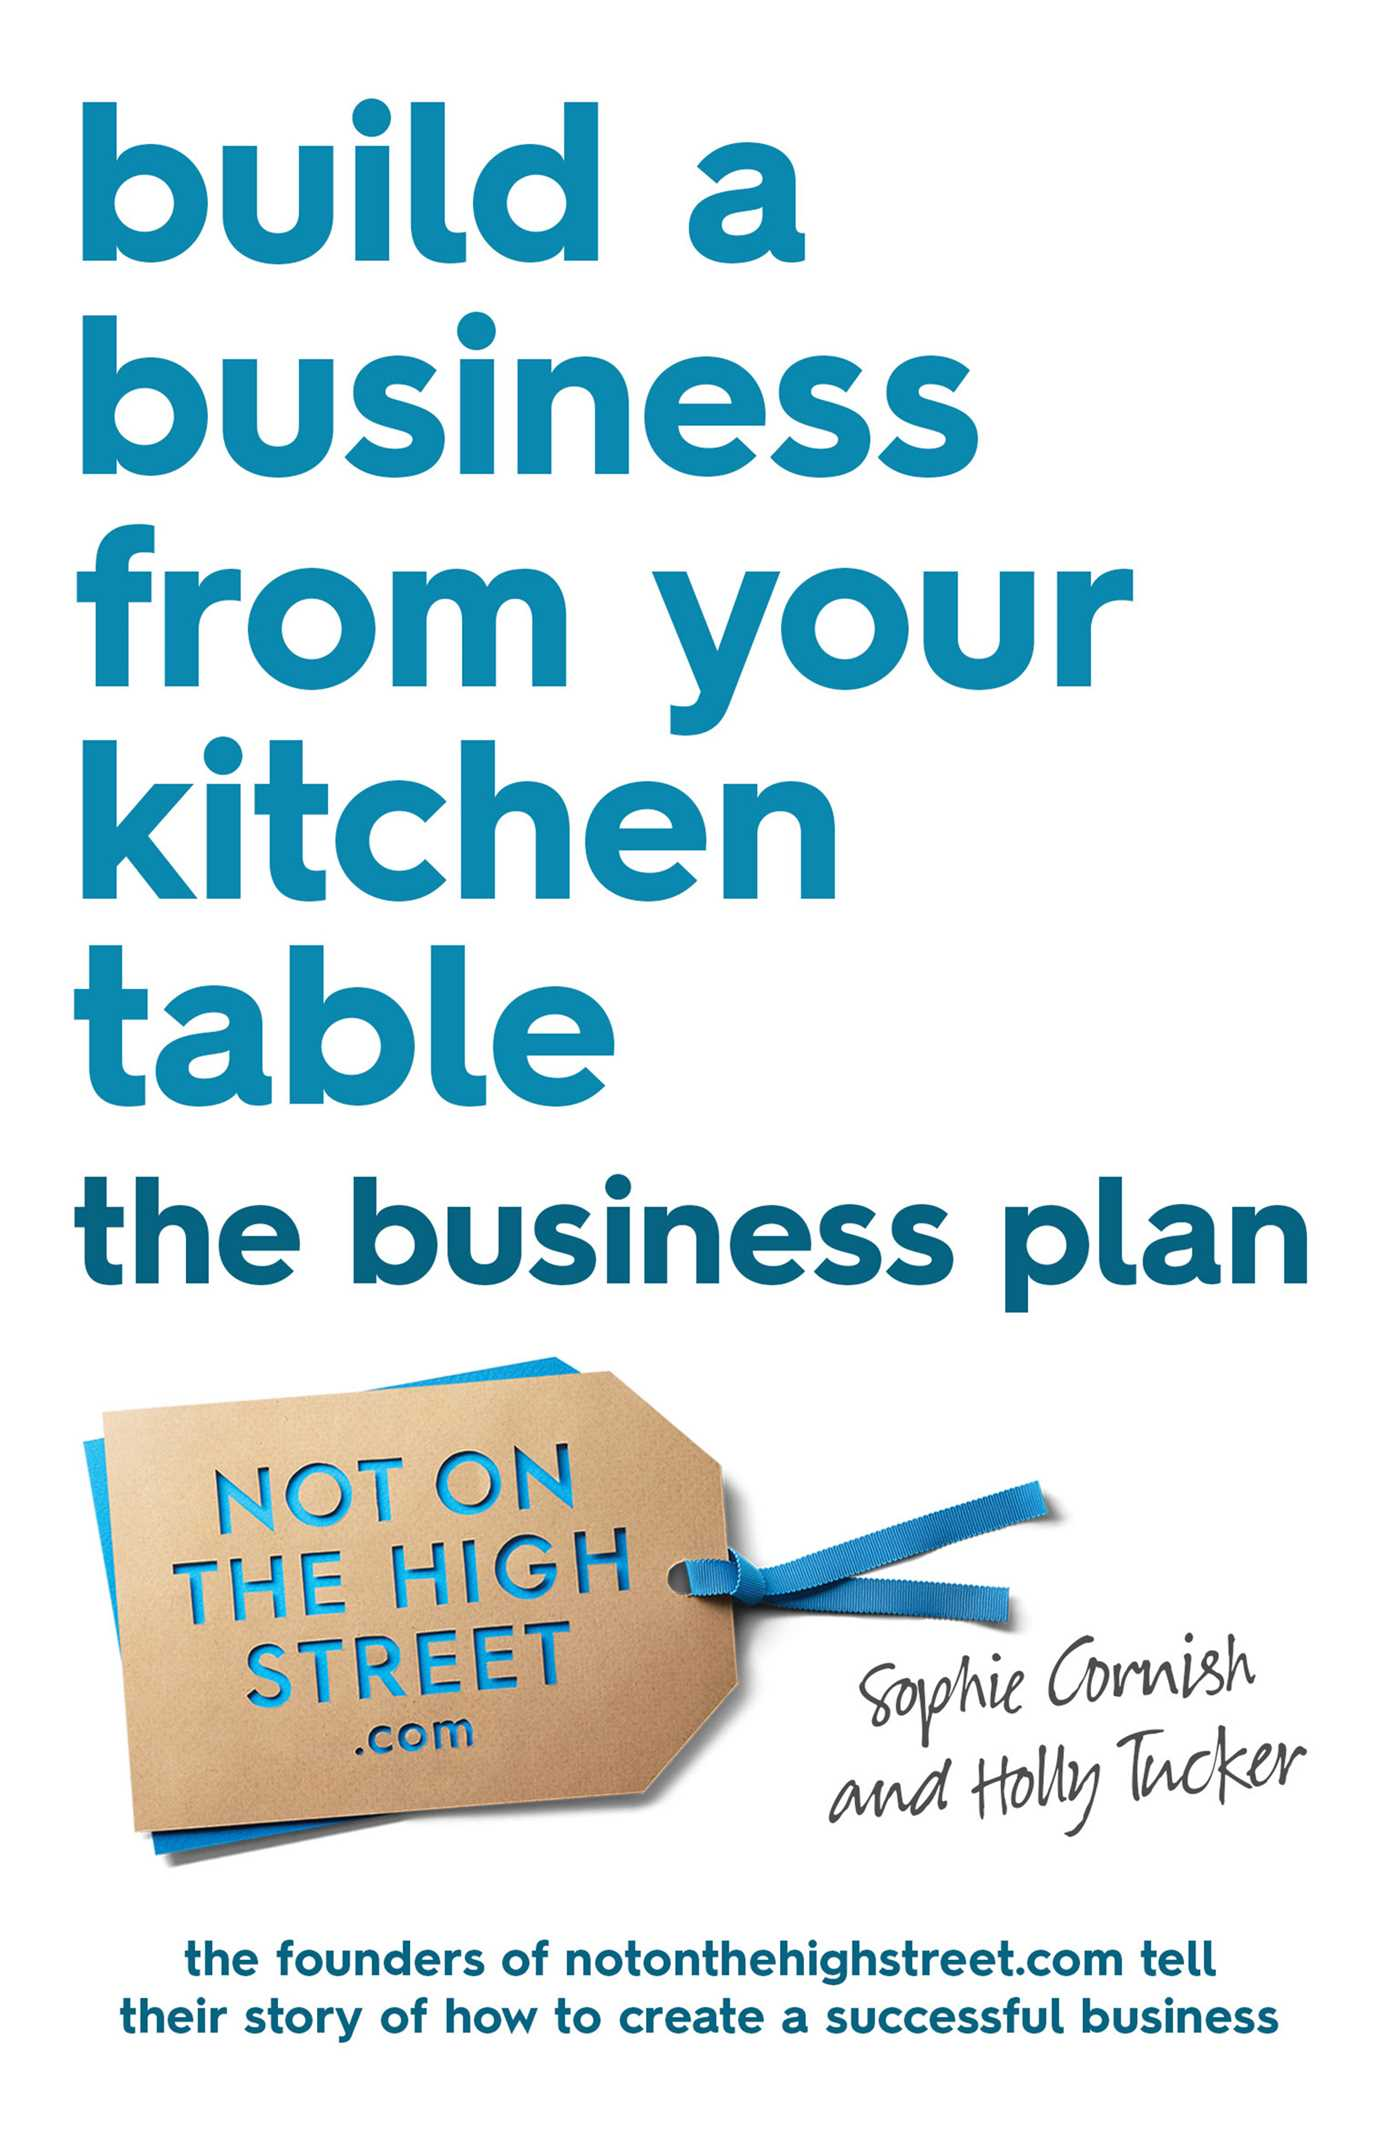 build a business from your kitchen table bookssophie cornish